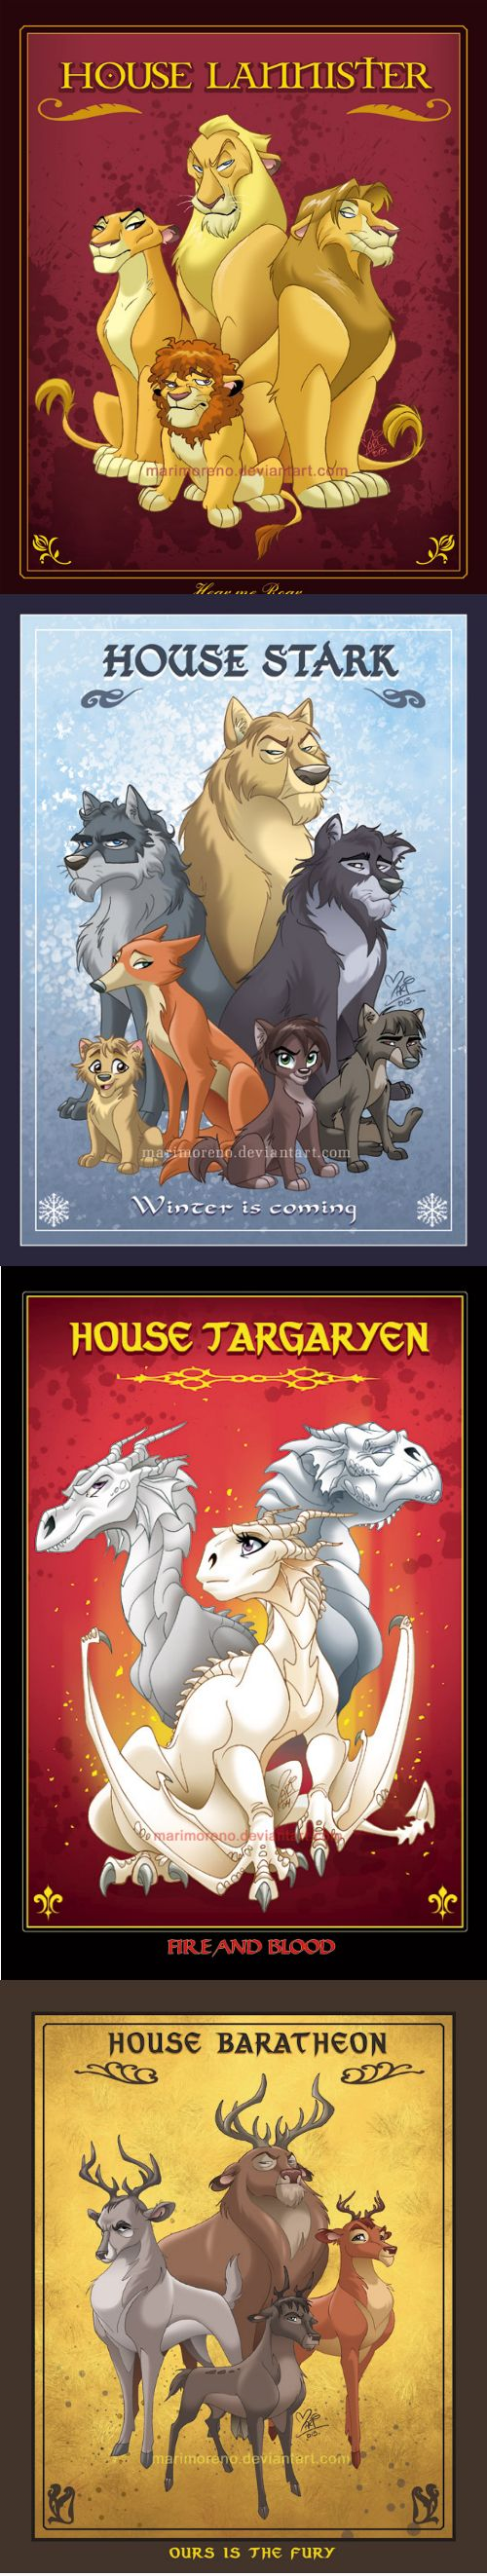 Game of thrones, Houses as Animals